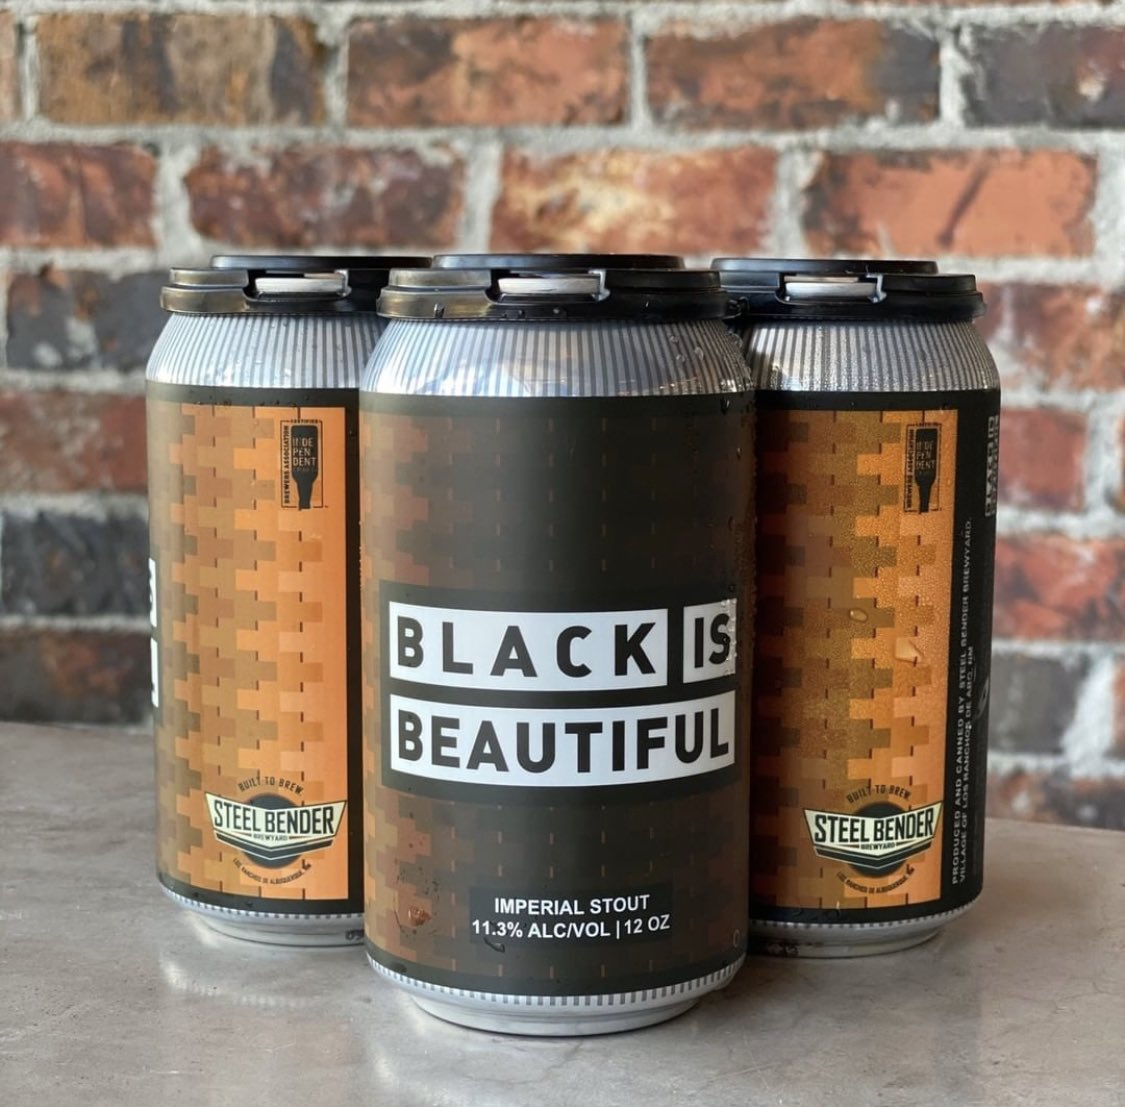 New Mexico, let's all make it a beautiful weekend. ⁠ ⁠Black Is Beautiful Imperial #Stout benefitting the New Mexico Black Leadership Council available on draft (7-oz pours) and in 12-oz. 4-packs ($10). ⁠ #blackisbeautifulbeer #BuiltToBrew #NMcraftbeer https://t.co/1z6E9VFoGp